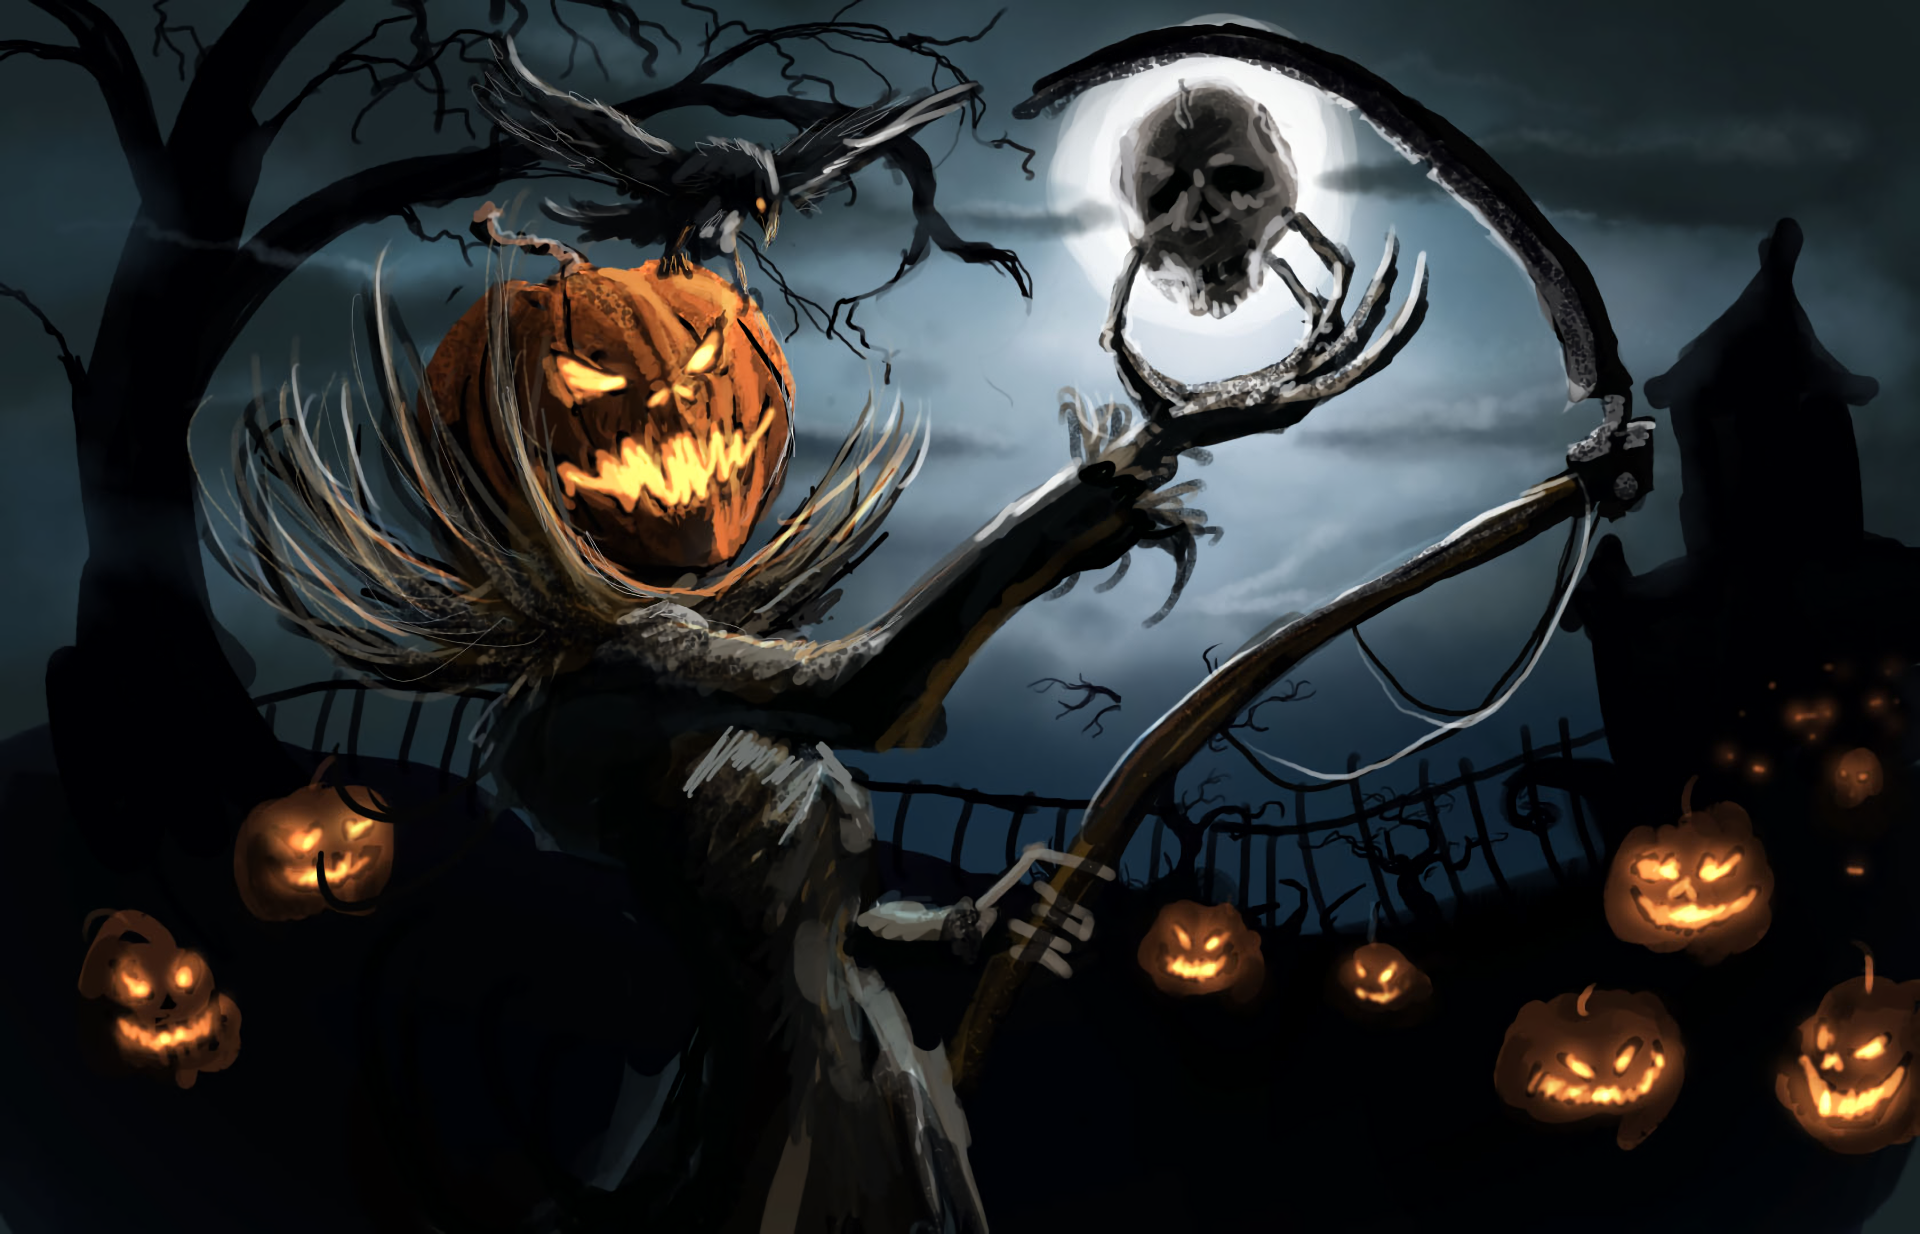 647 Halloween HD Wallpapers | Backgrounds - Wallpaper Abyss